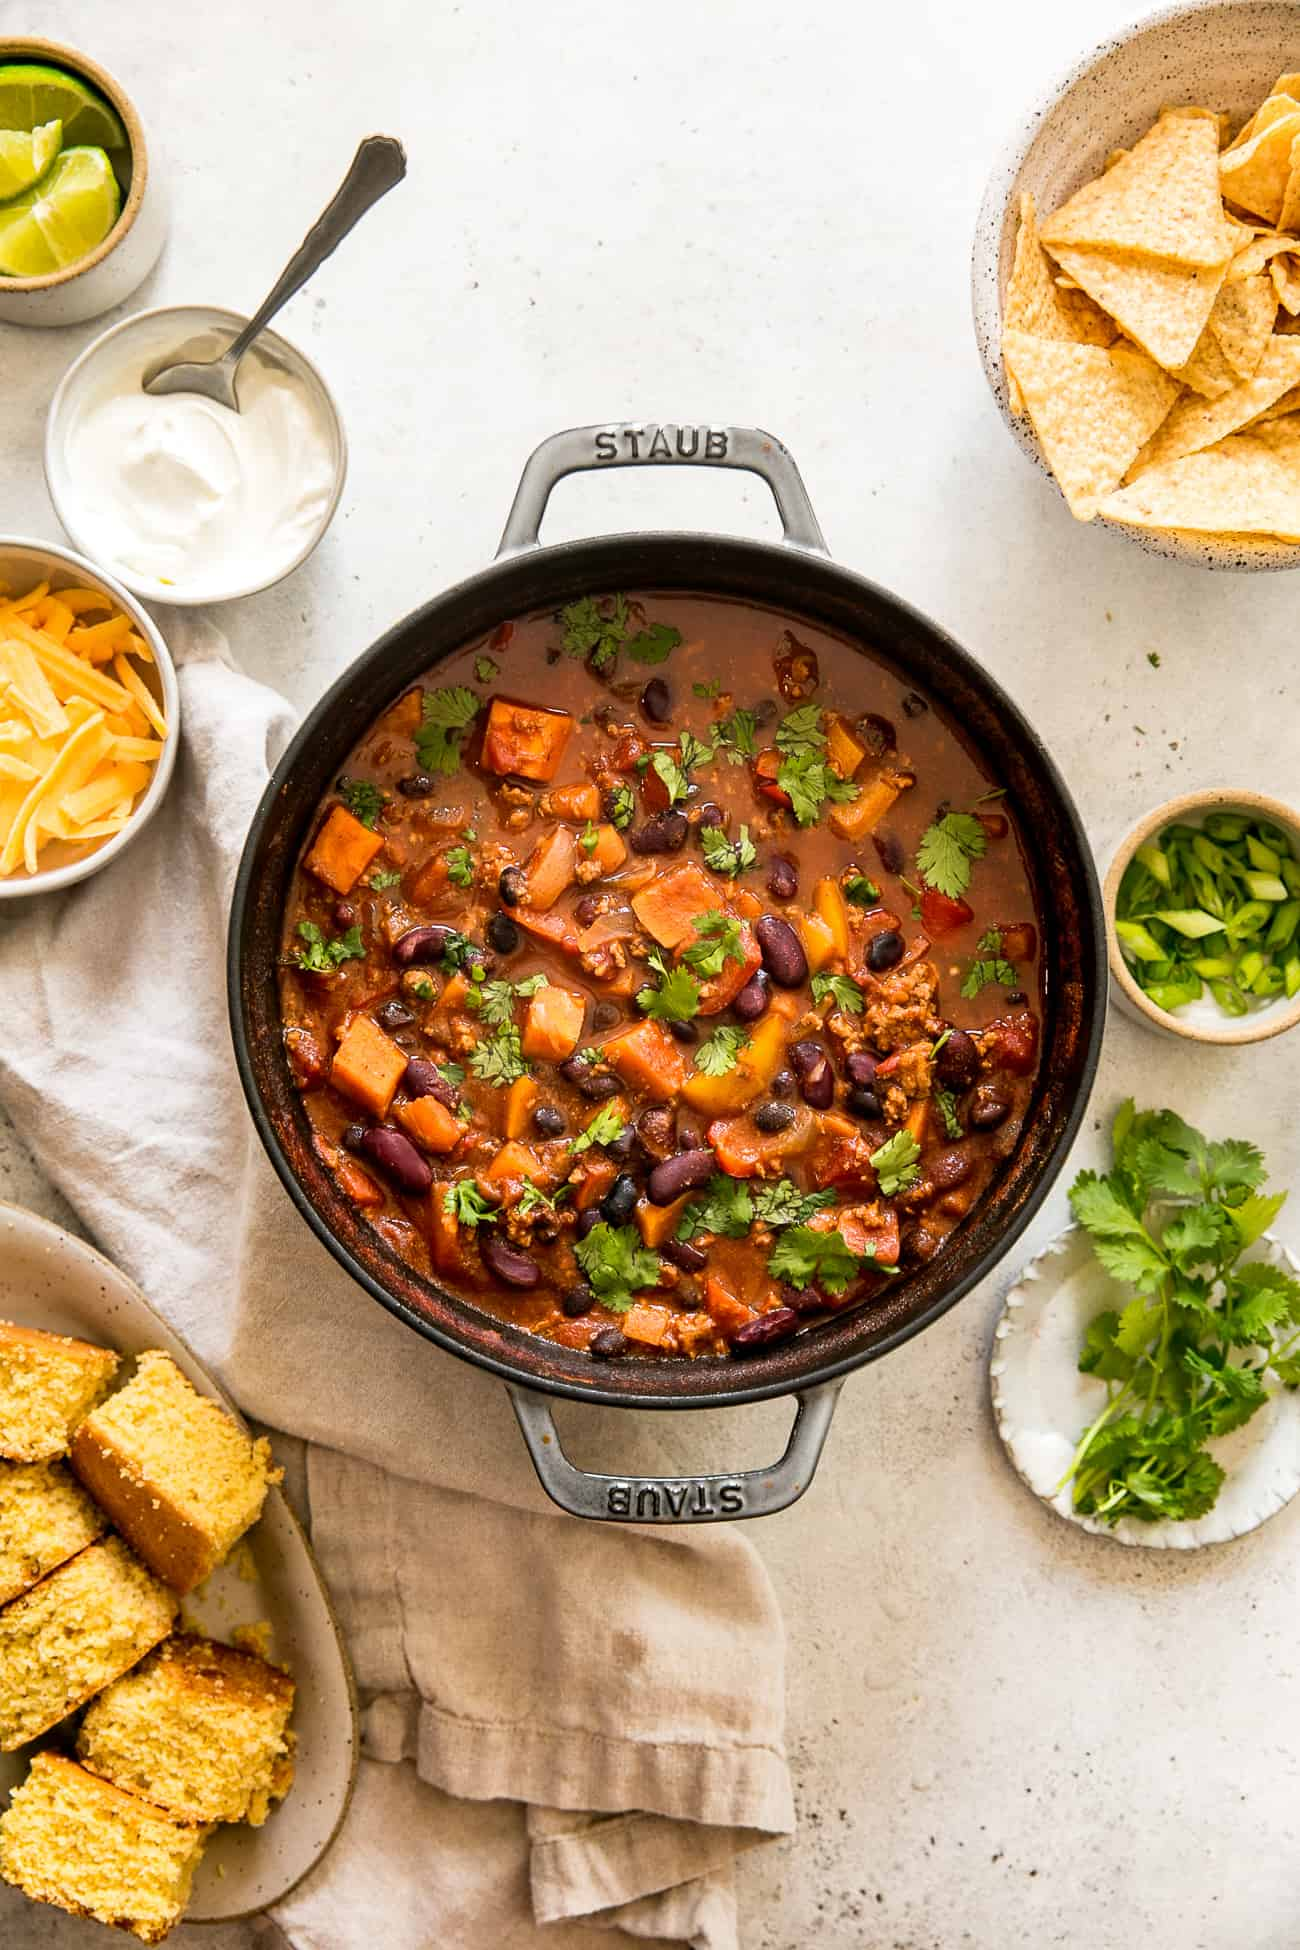 staub pot filled with healthy turkey chili, surrounded by cornbread, tortilla chips, cilantro, green onion, lime wedges, cheese, and sour cream